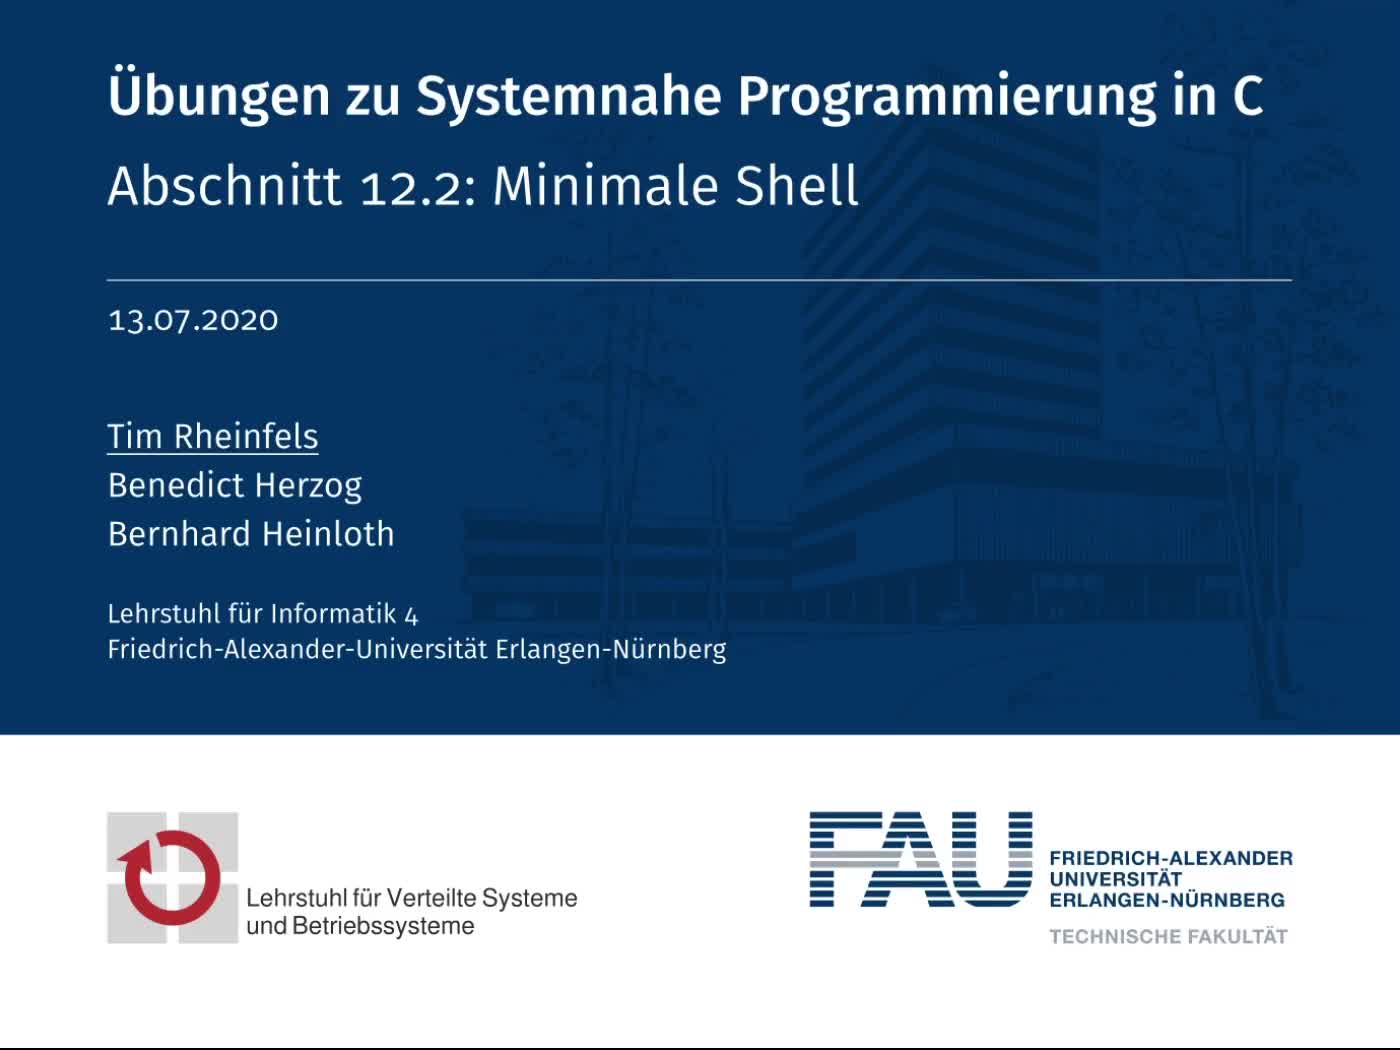 12.2: Minimale Shell preview image